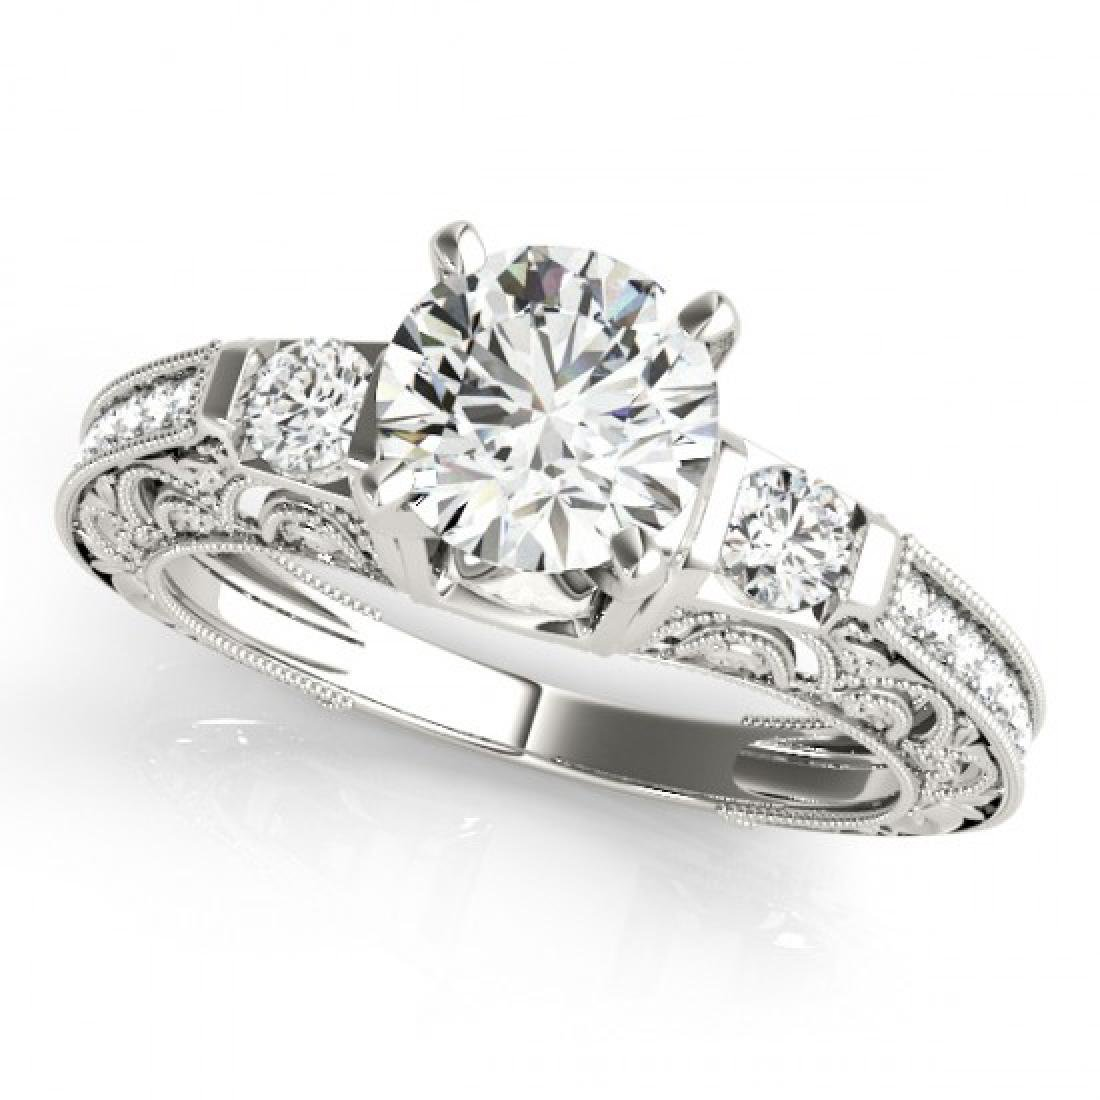 0.91 CTW Certified VS/SI Diamond Solitaire Antique Ring - 2